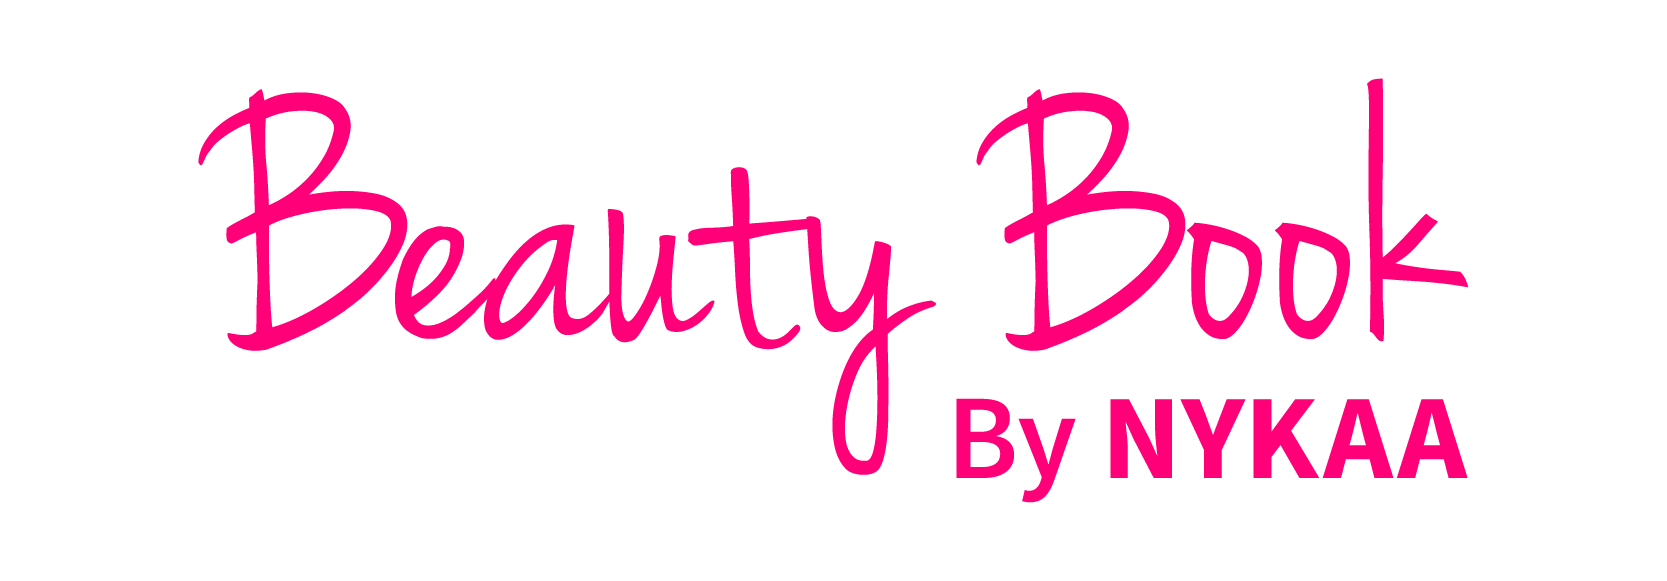 Nykaa Beautybook A Blog About Womens Beauty Makeup Fashion And